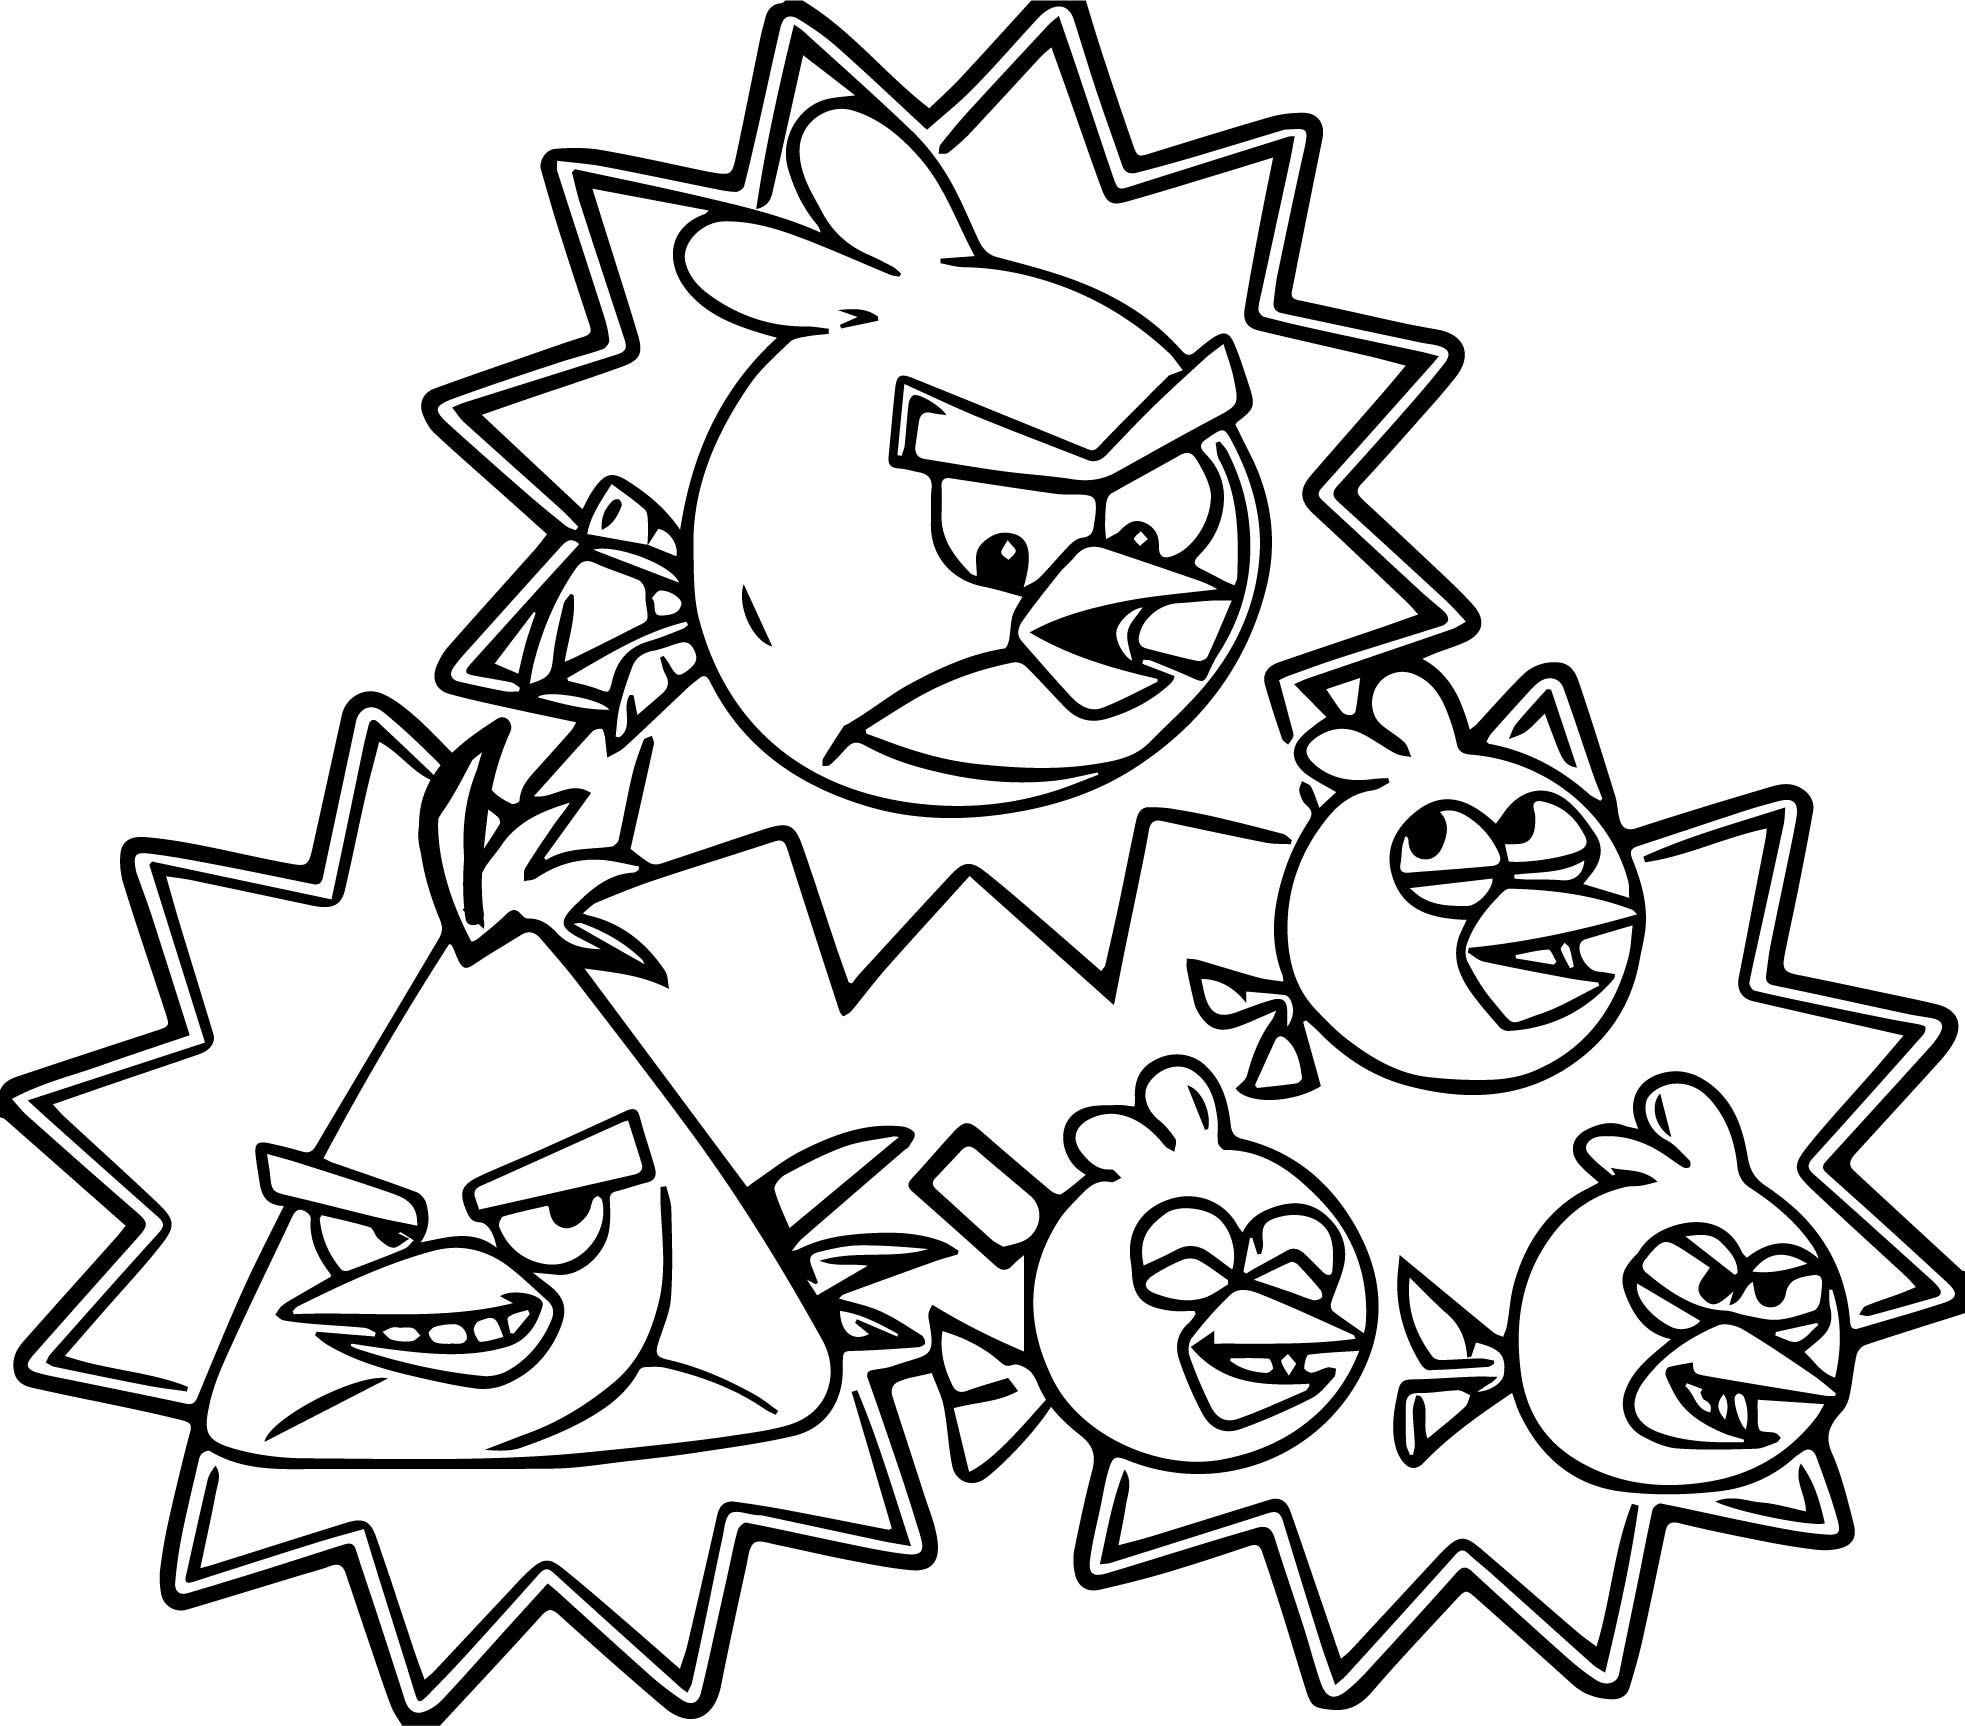 Angry birds cartoon coloring page for Angry birds rio coloring pages